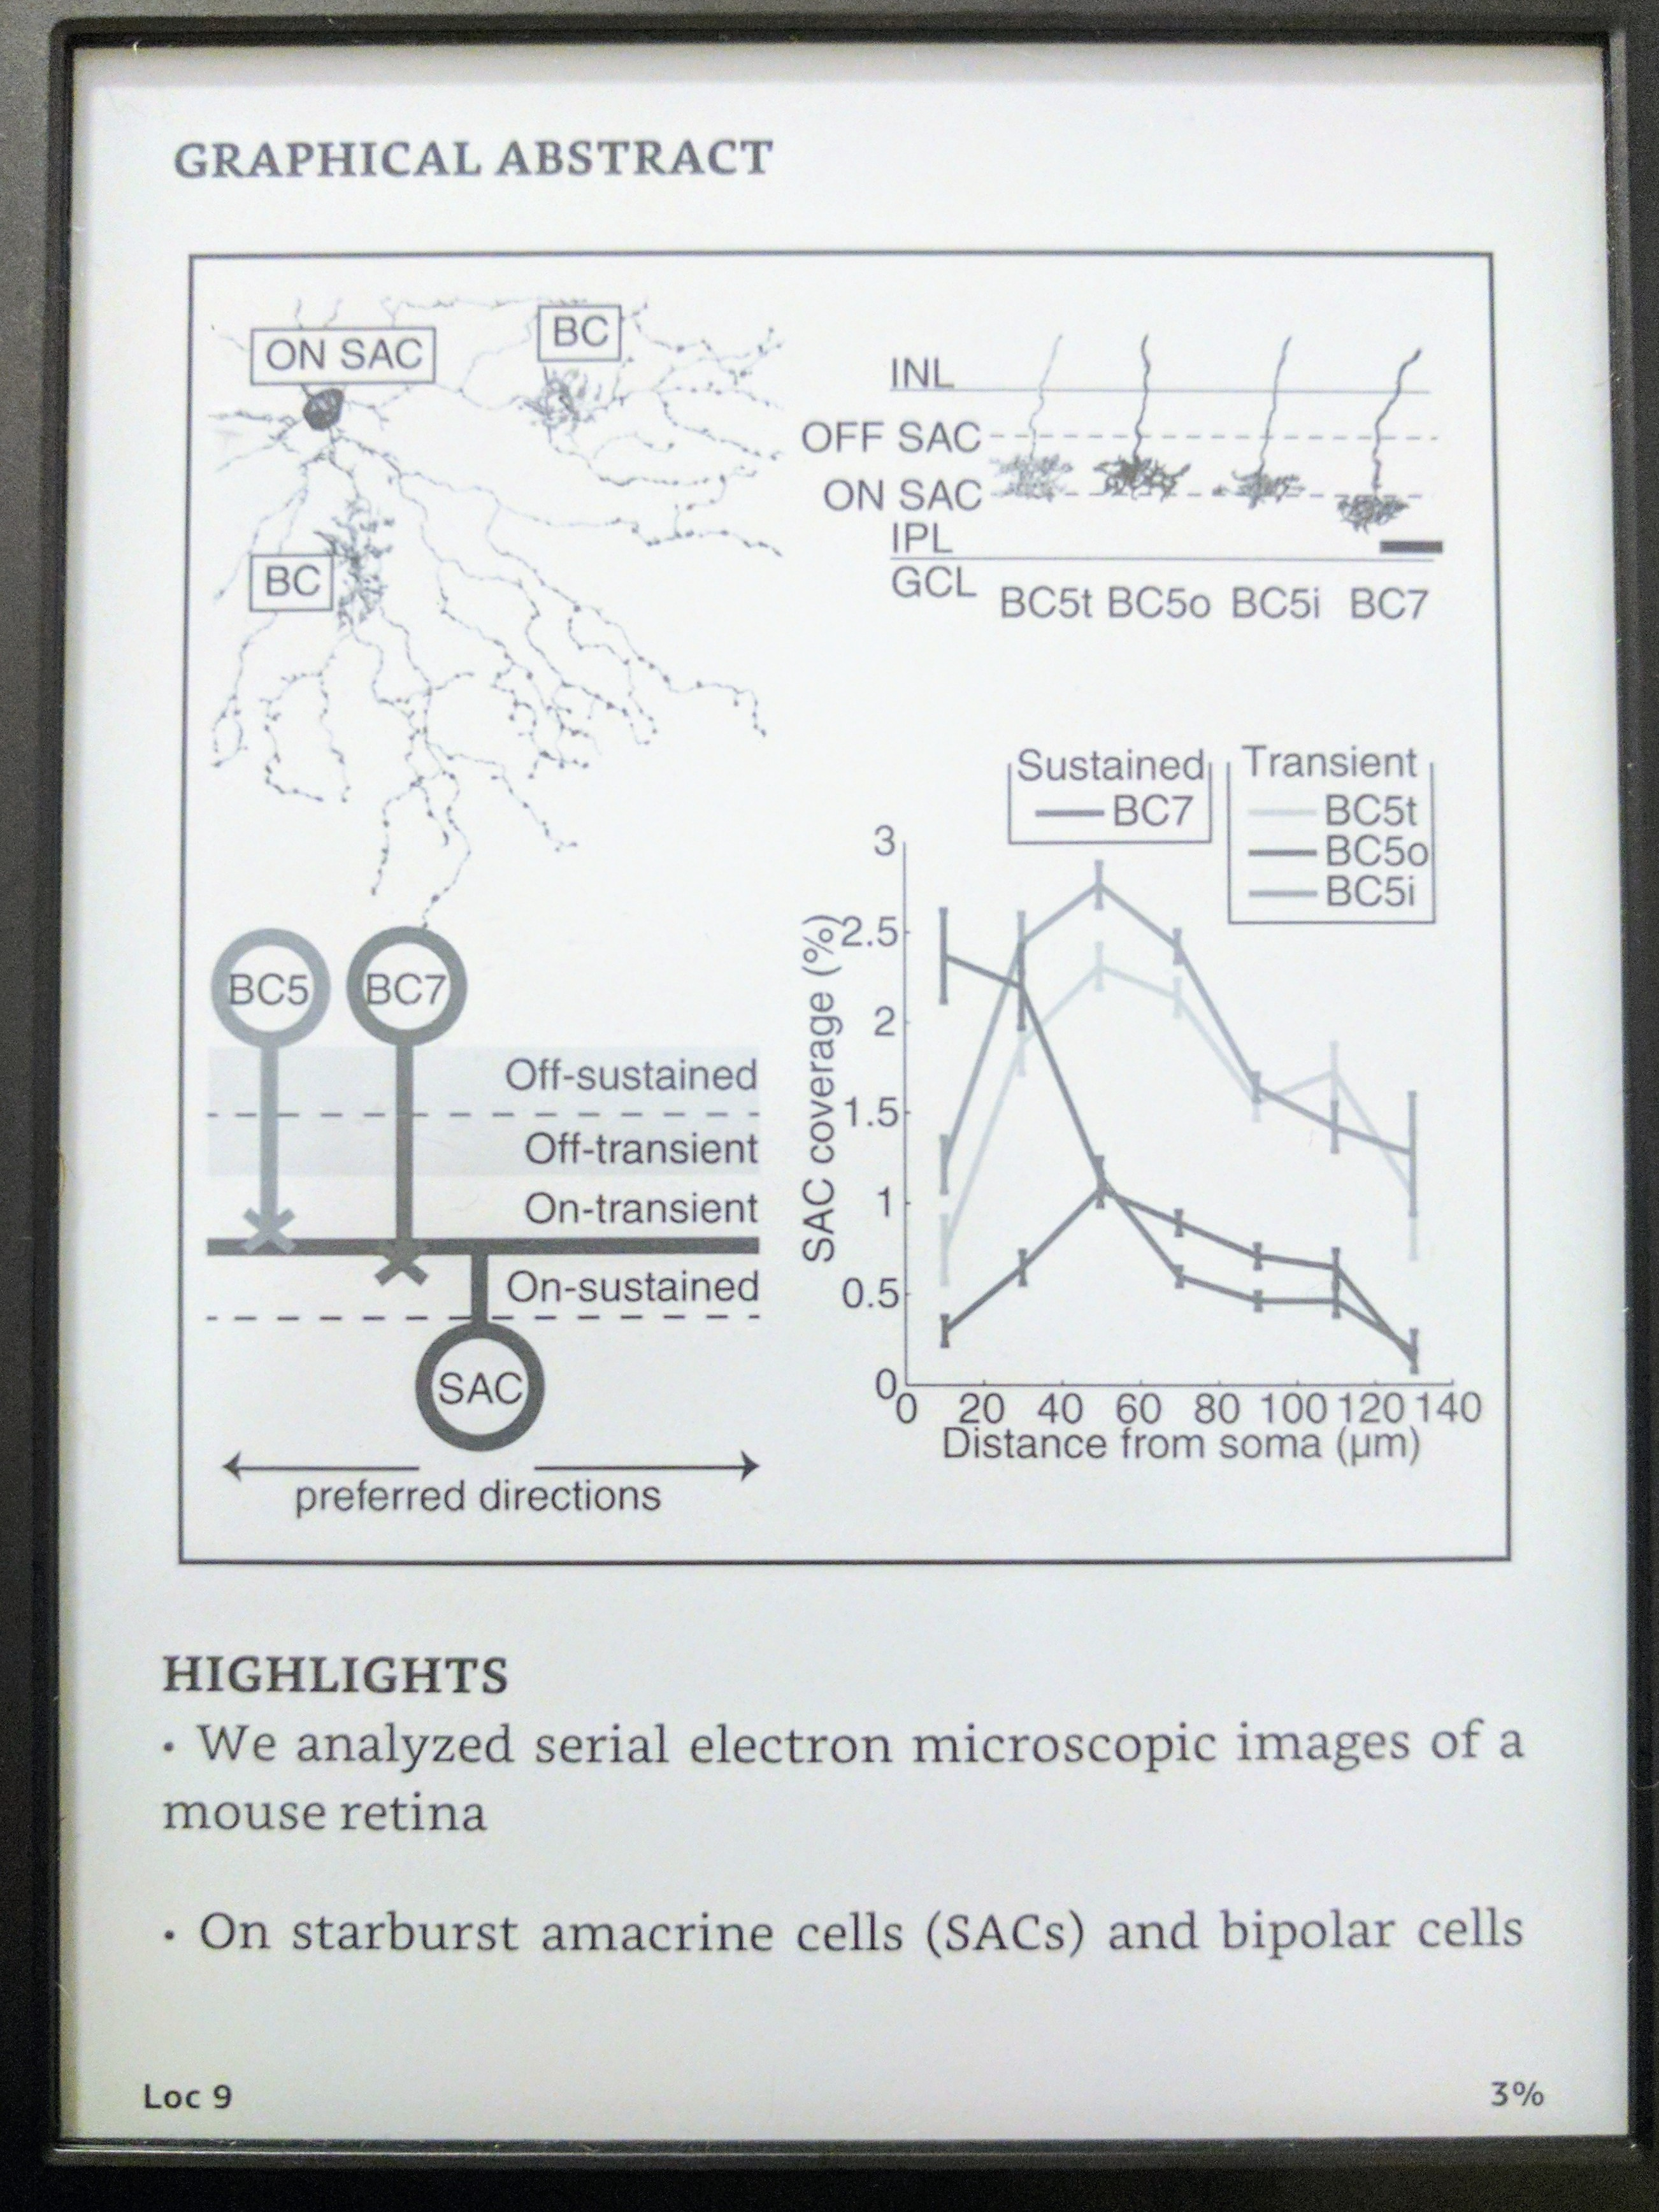 Reading Science Papers on Your Kindle - William Silversmith ... on kindle motherboard layout, kindle 2 reset button location, htc one schematic, nexus 7 schematic, kindle new battery, kindle touch schematic, kindle mayday button, kindle for dummies, lg g2 schematic,